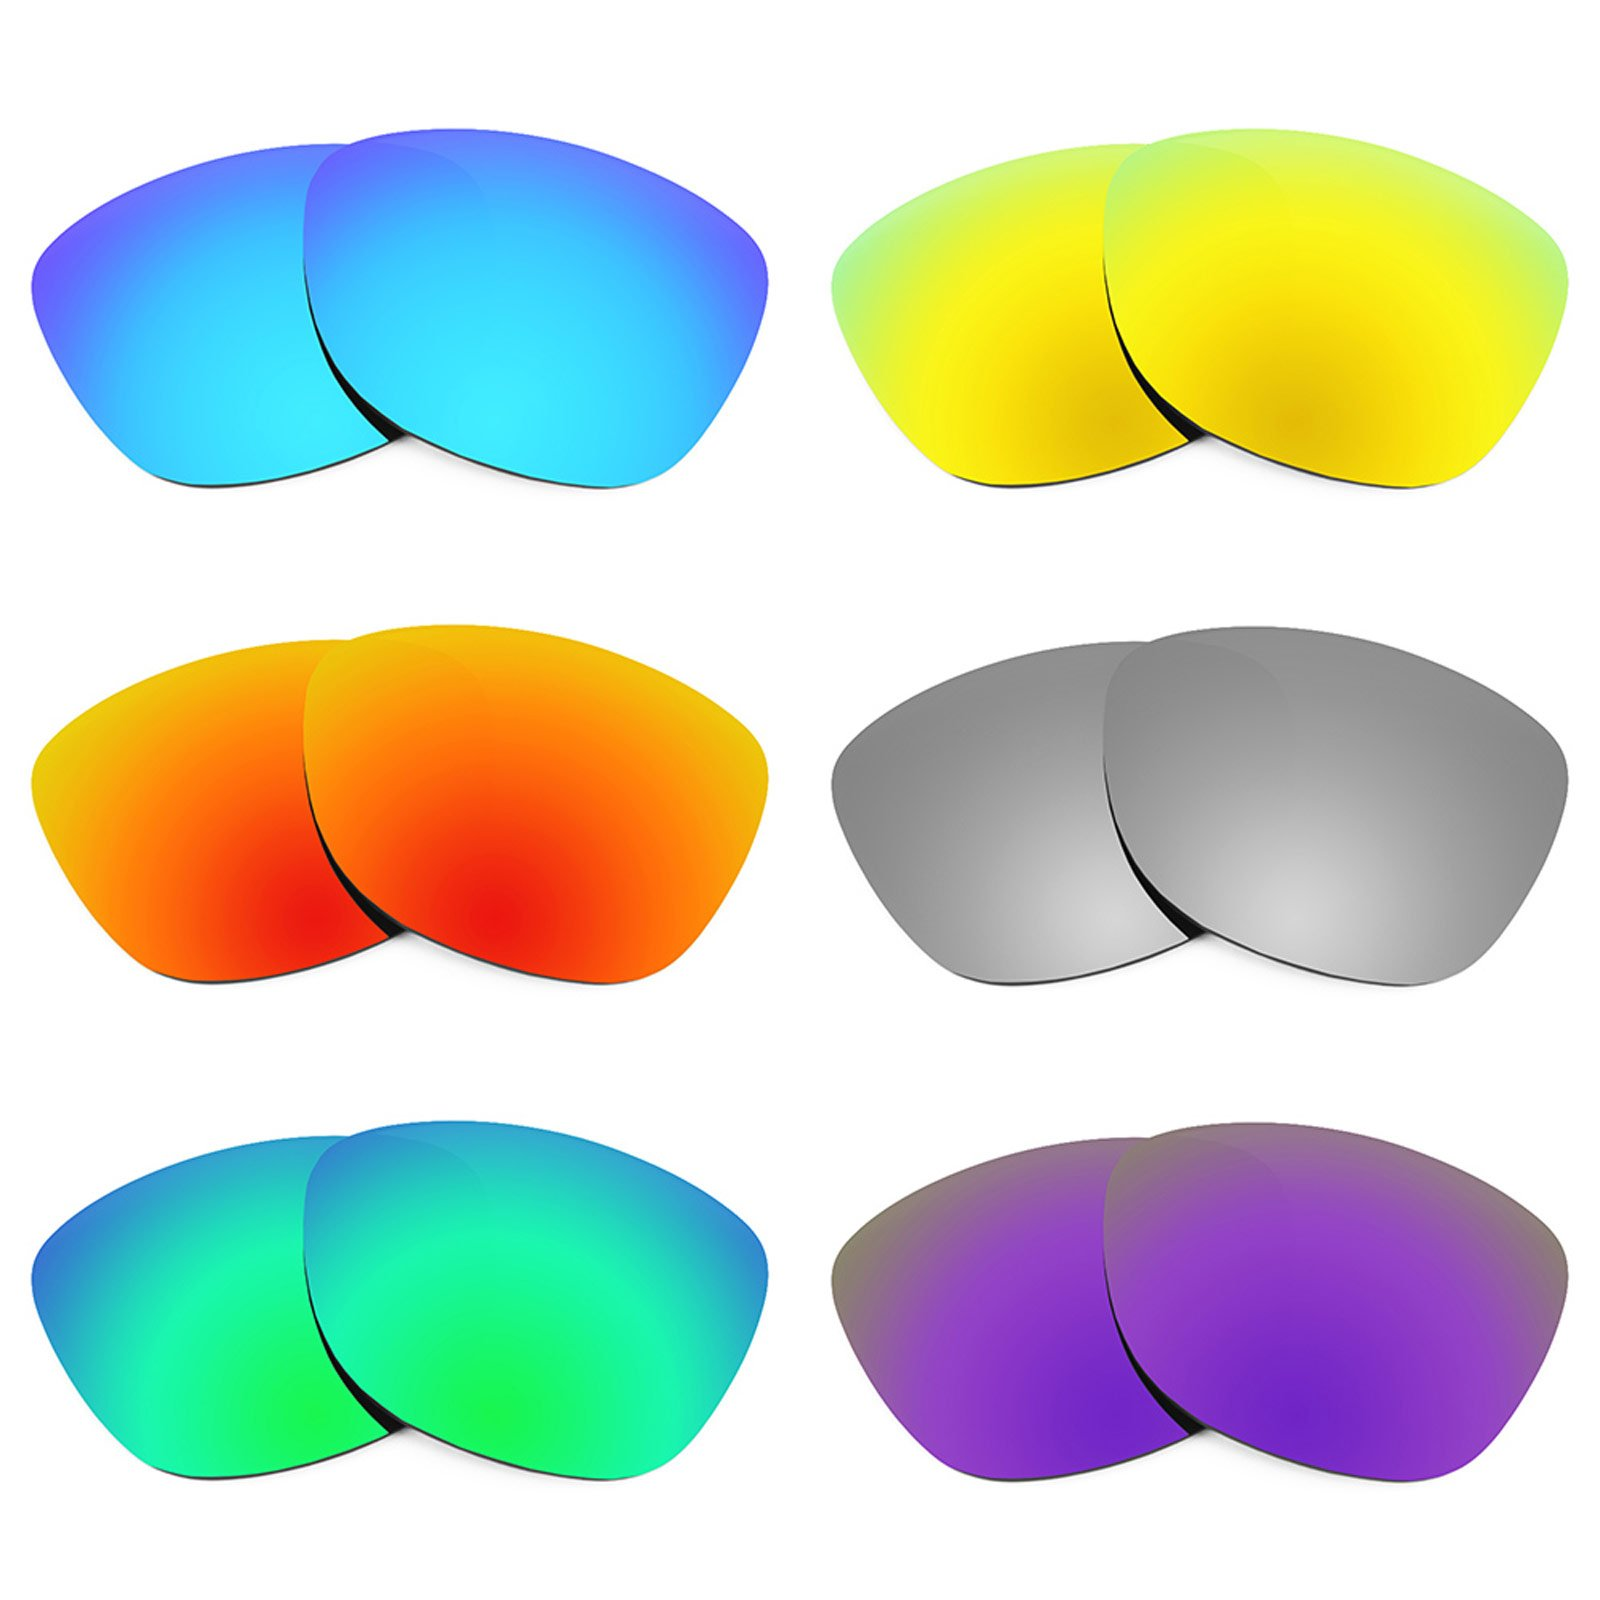 Revant Replacement Lenses for Oakley Frogskins 6 Pair Combo Pack K027 by Revant